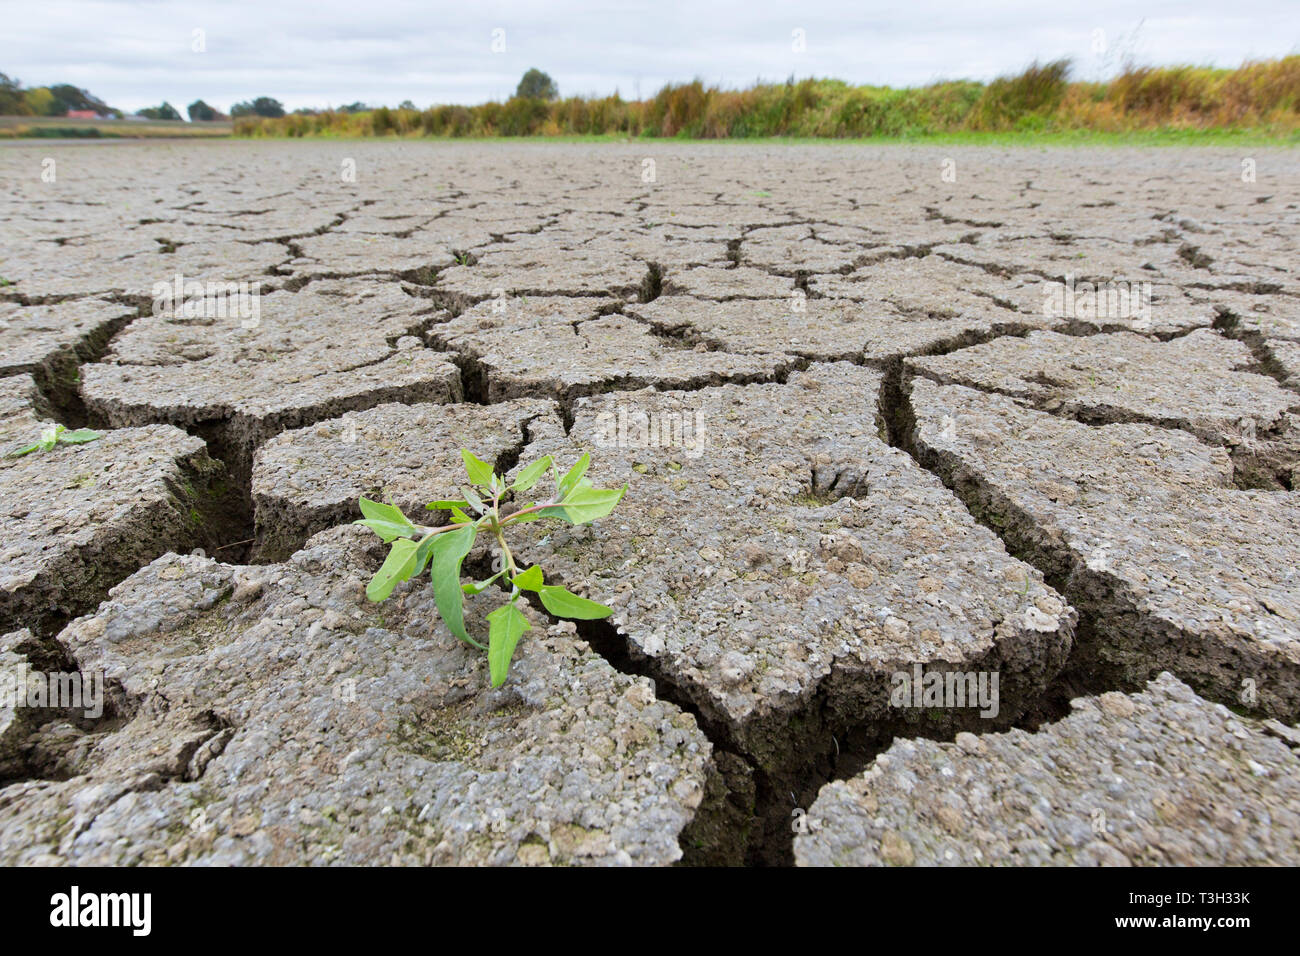 New shoot of plant in dry cracked clay mud in dried up lake bed / riverbed caused by prolonged drought in summer in hot weather temperatures - Stock Image